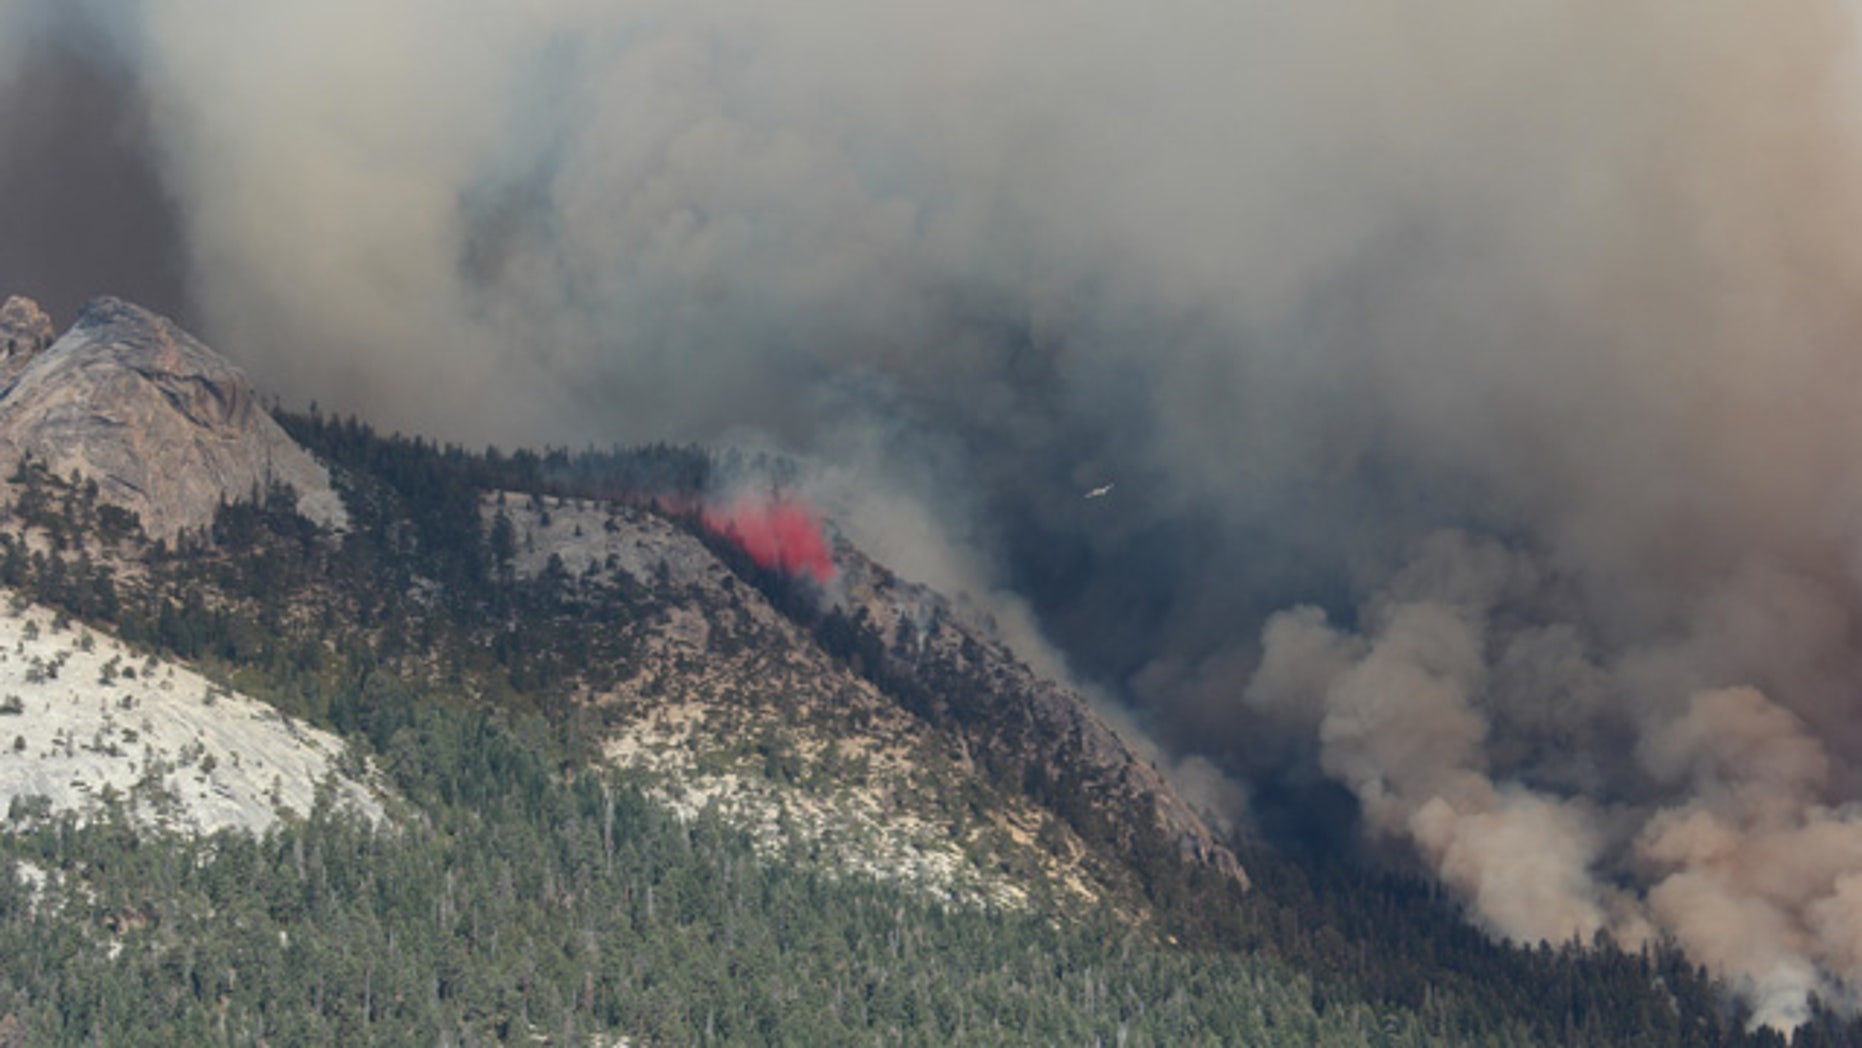 September 7, 2014: This photo provided by Rachel Kirk shows smoke from a fire rising above Little Yosemite Valley near Yosemite National Park, Calif. (AP Photo/Rachel Kirk)